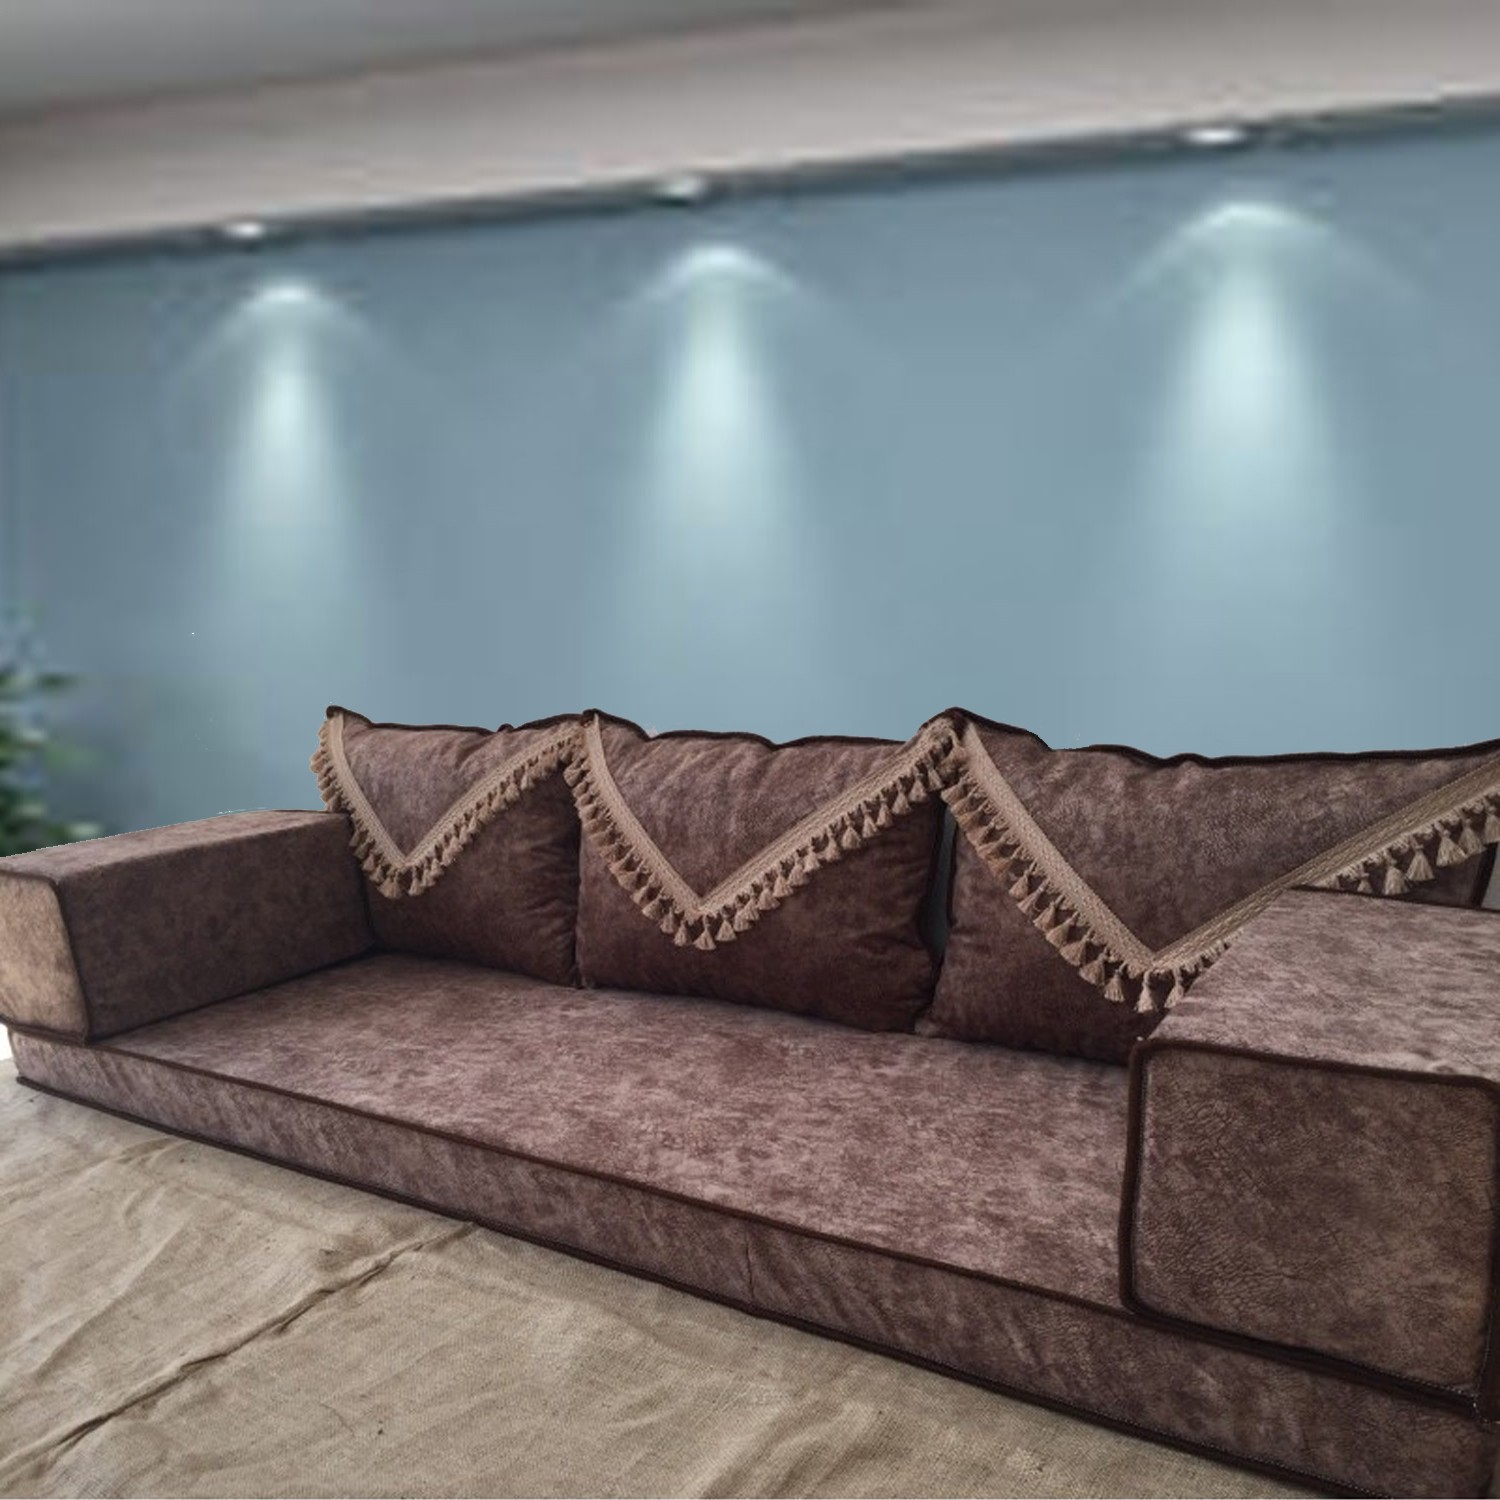 Brown floor sofa with triple back pillows - SHI_FS372